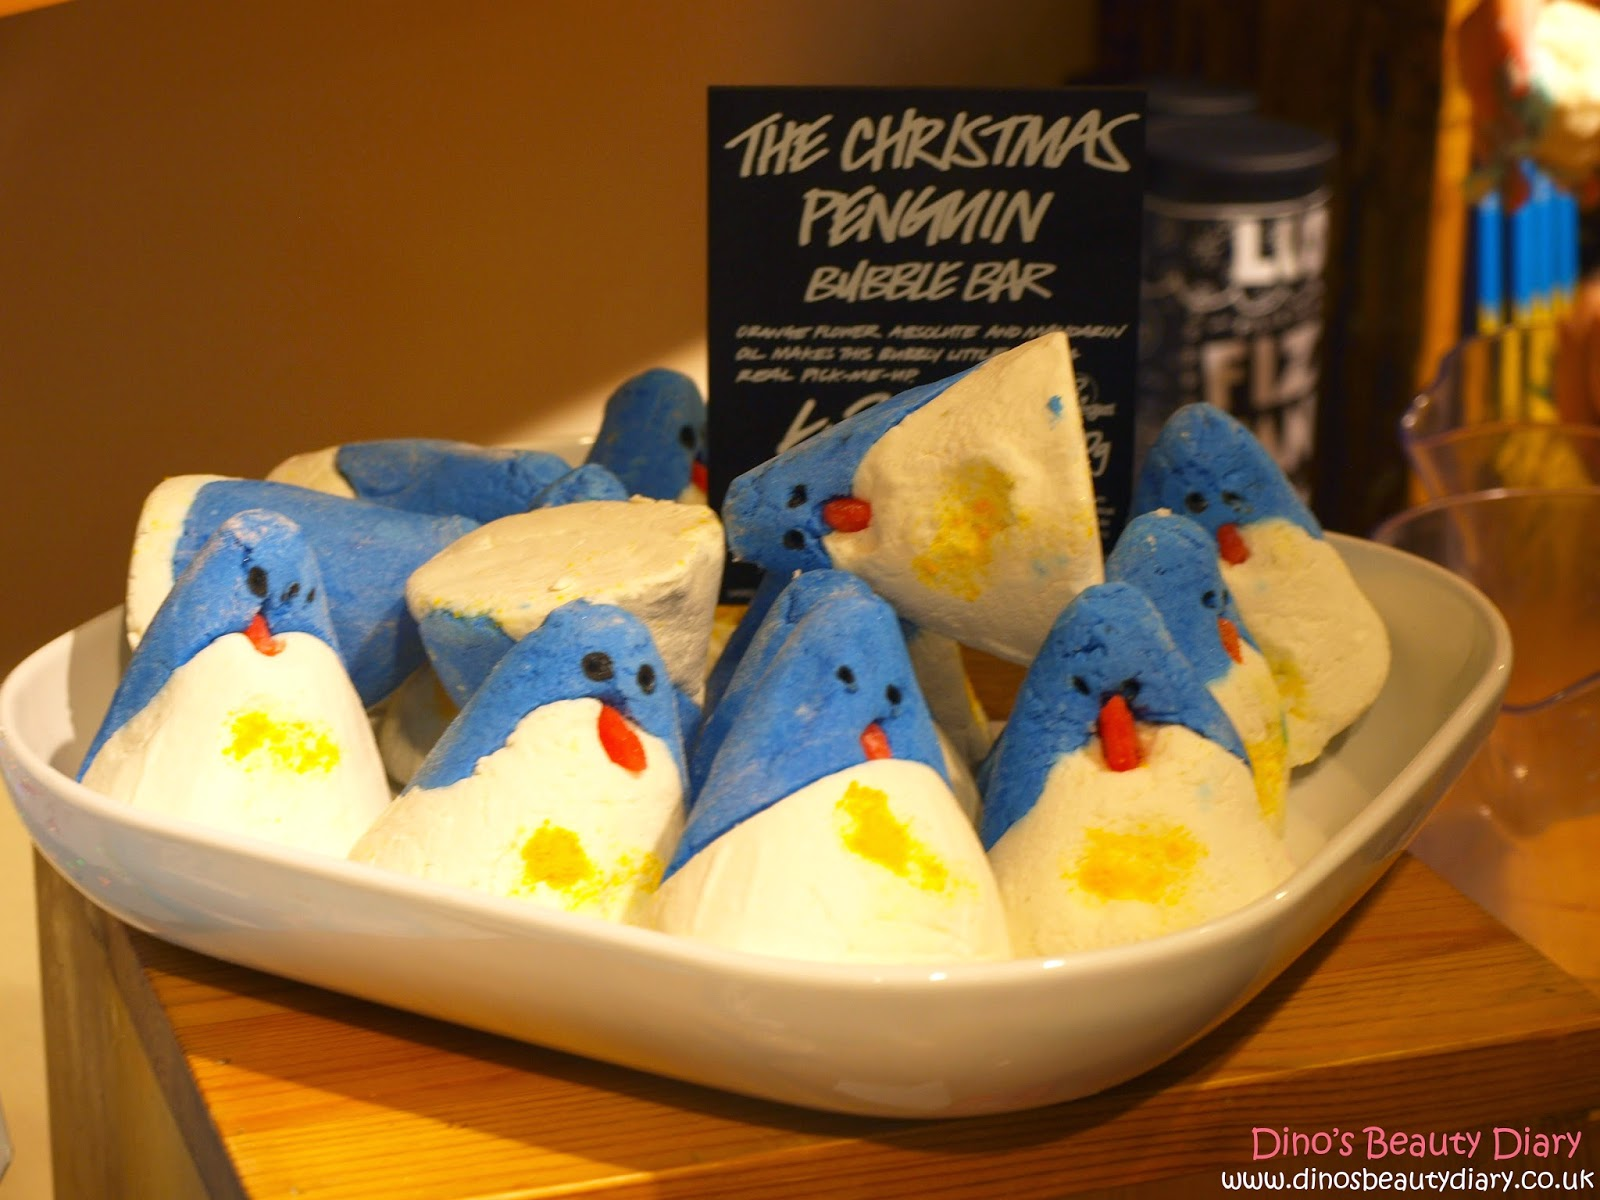 Dino's Beauty Diary - Lush Nottingham Bloggers Event - christmas penguin bubble bars